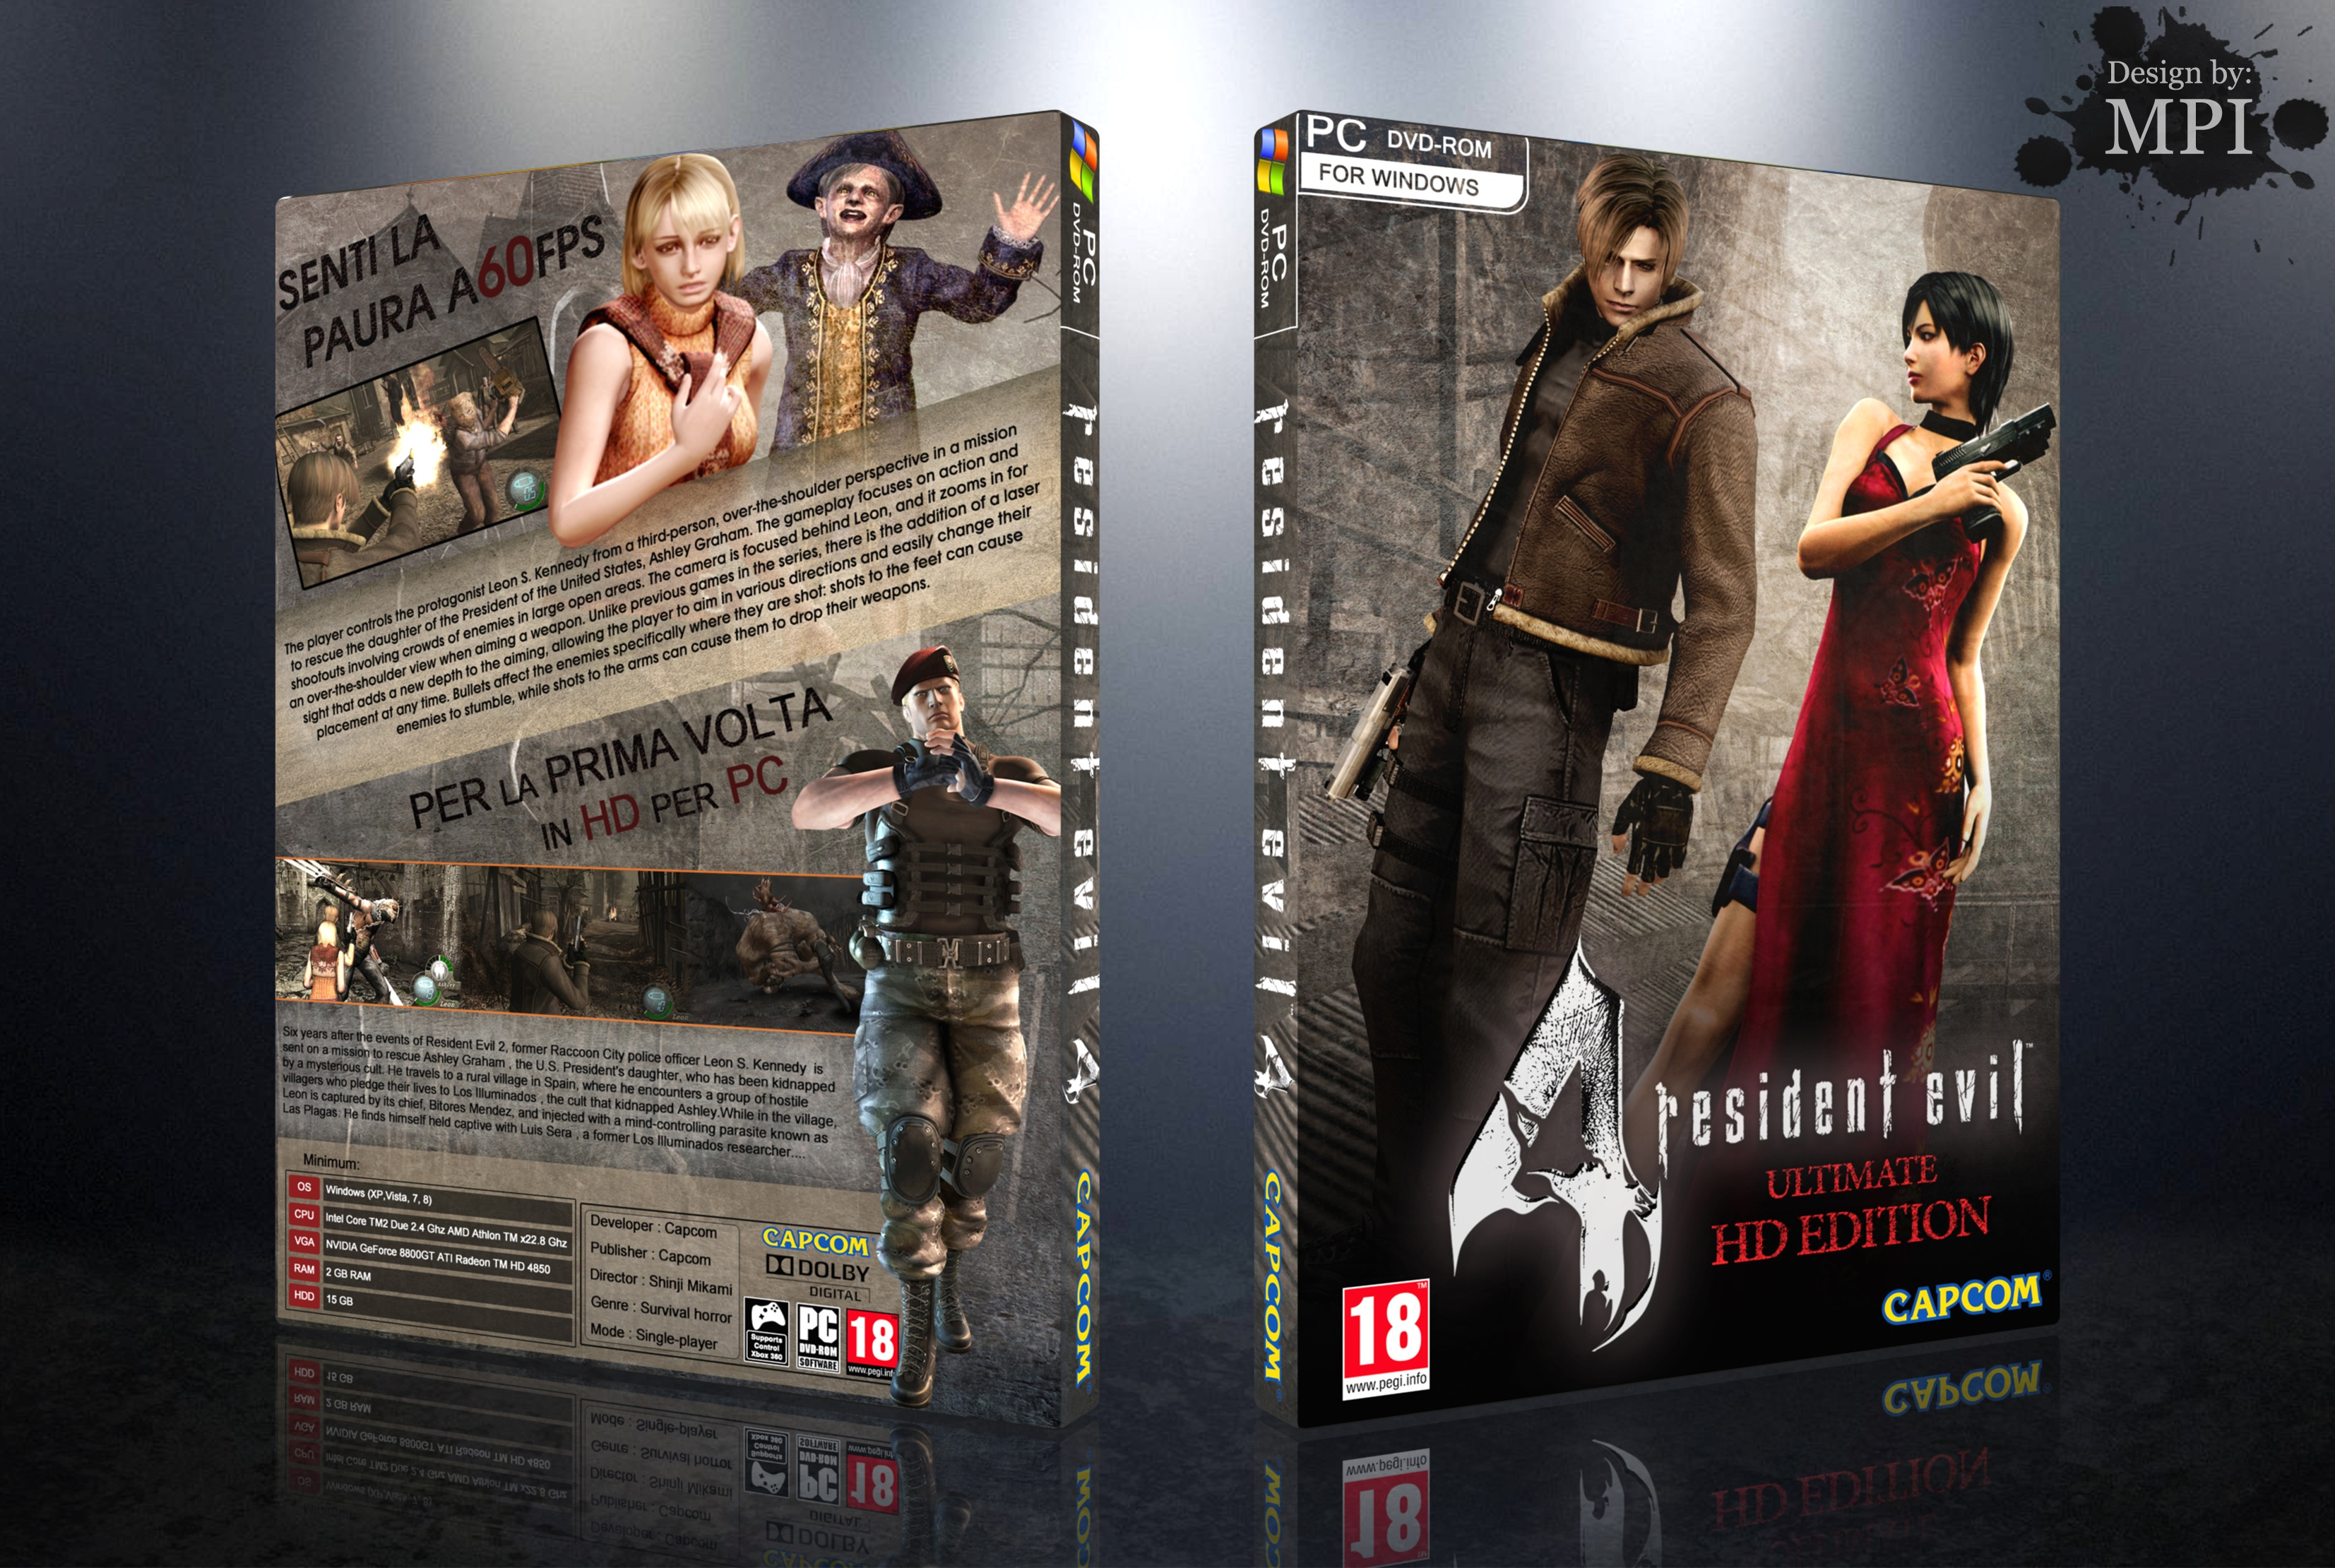 Resident Evil 4 Ultimate HD Edition box cover